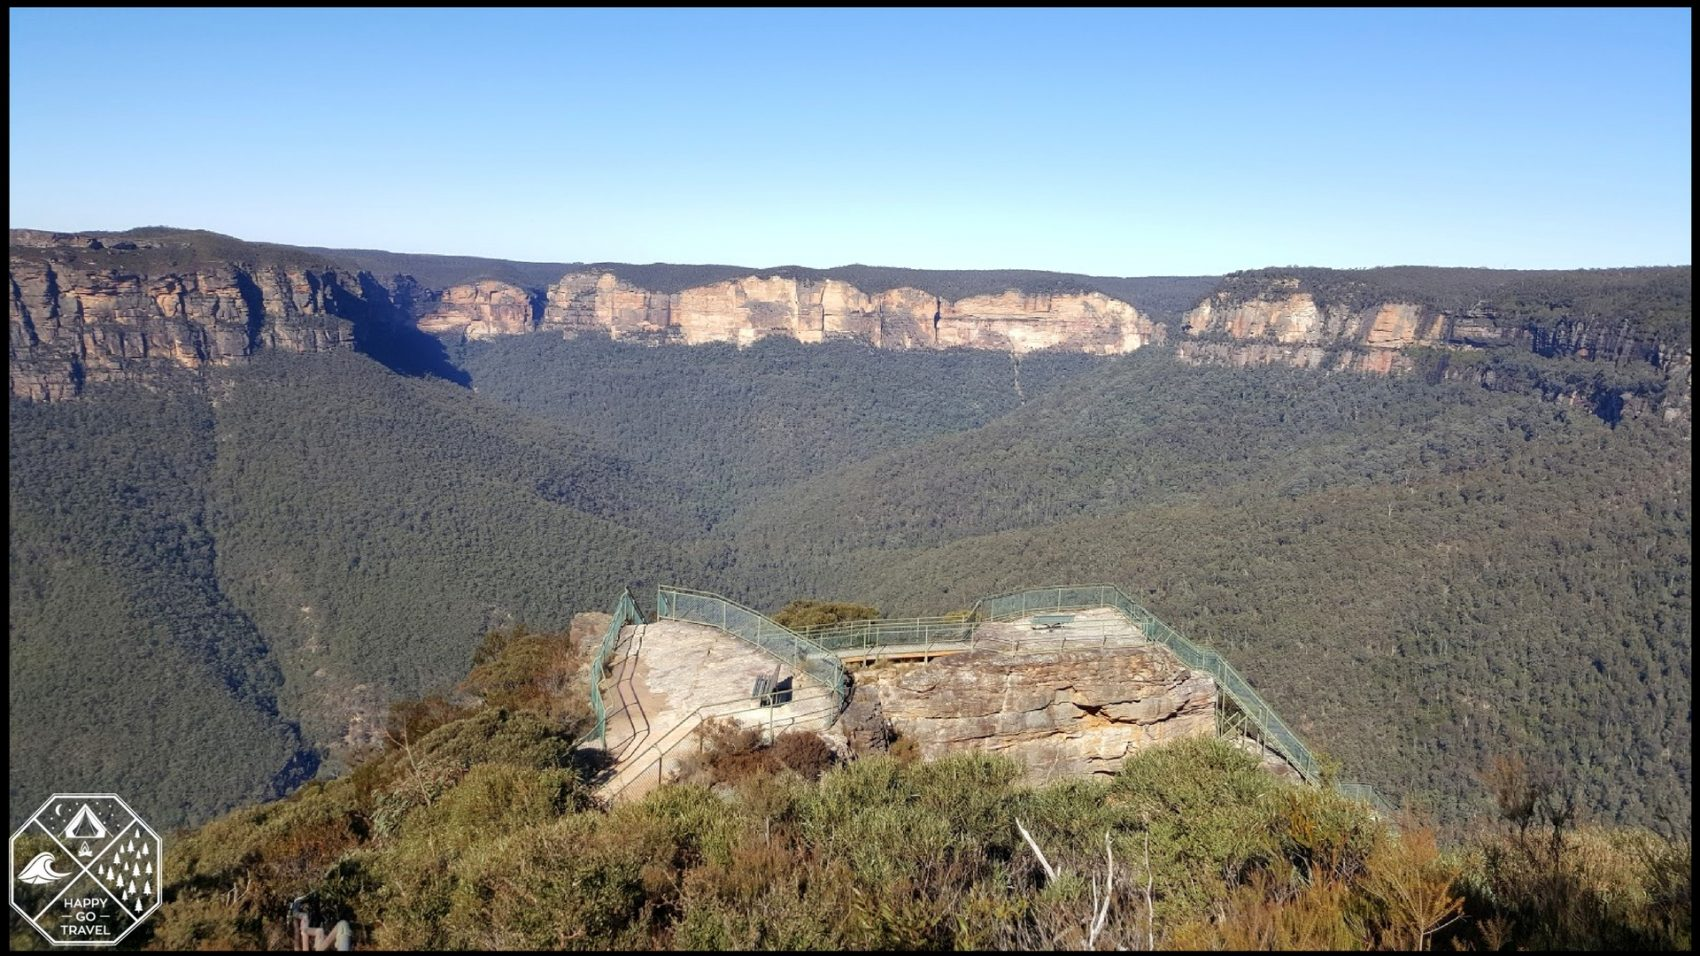 Blue Mountains tourist activities - Pulpit Rock Lookout